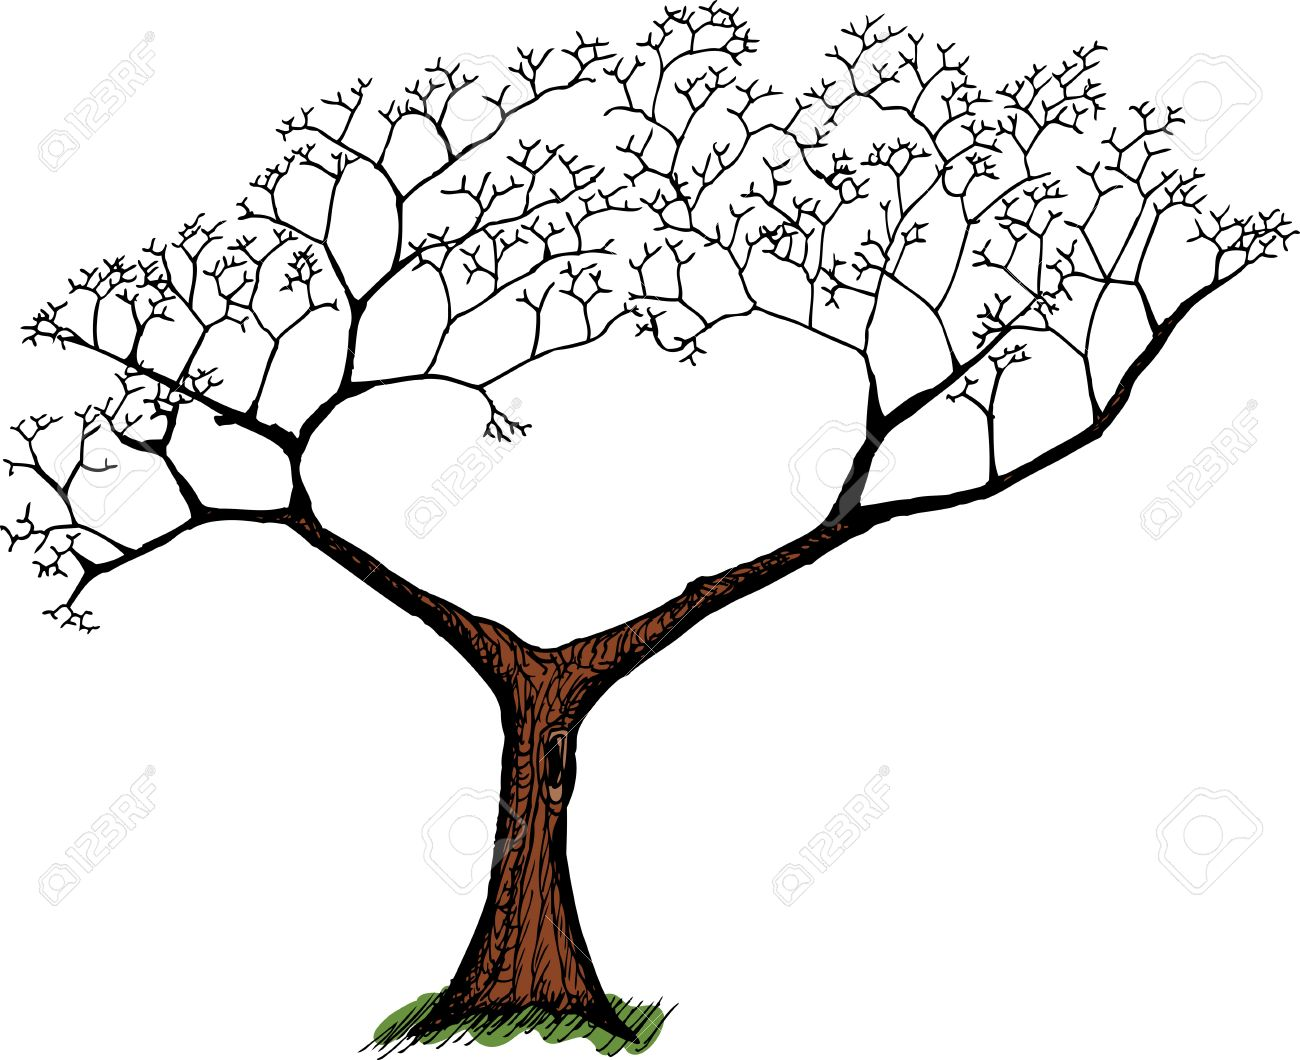 Dying Tree Clipart